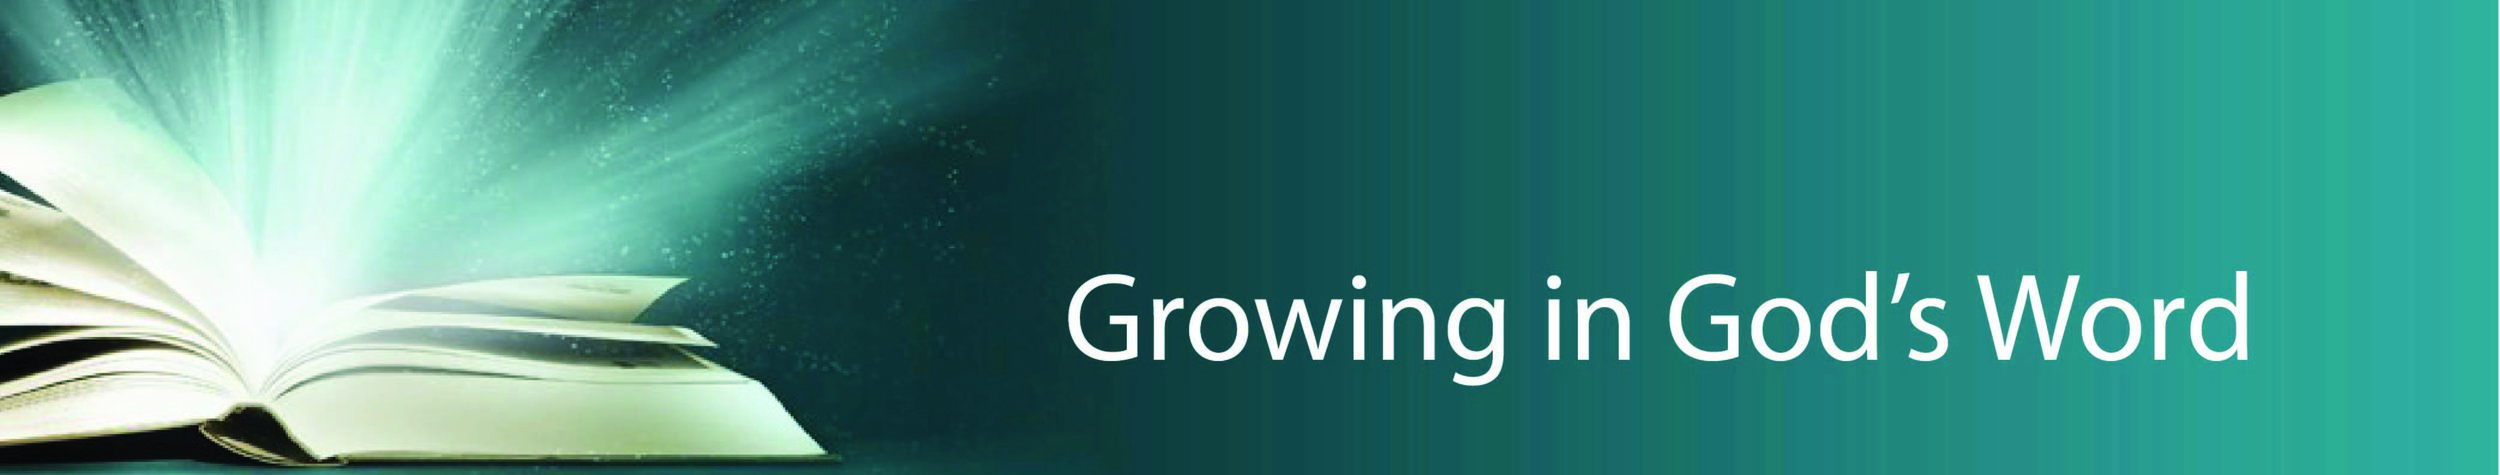 Growing-in-God-small-banner-02.jpg